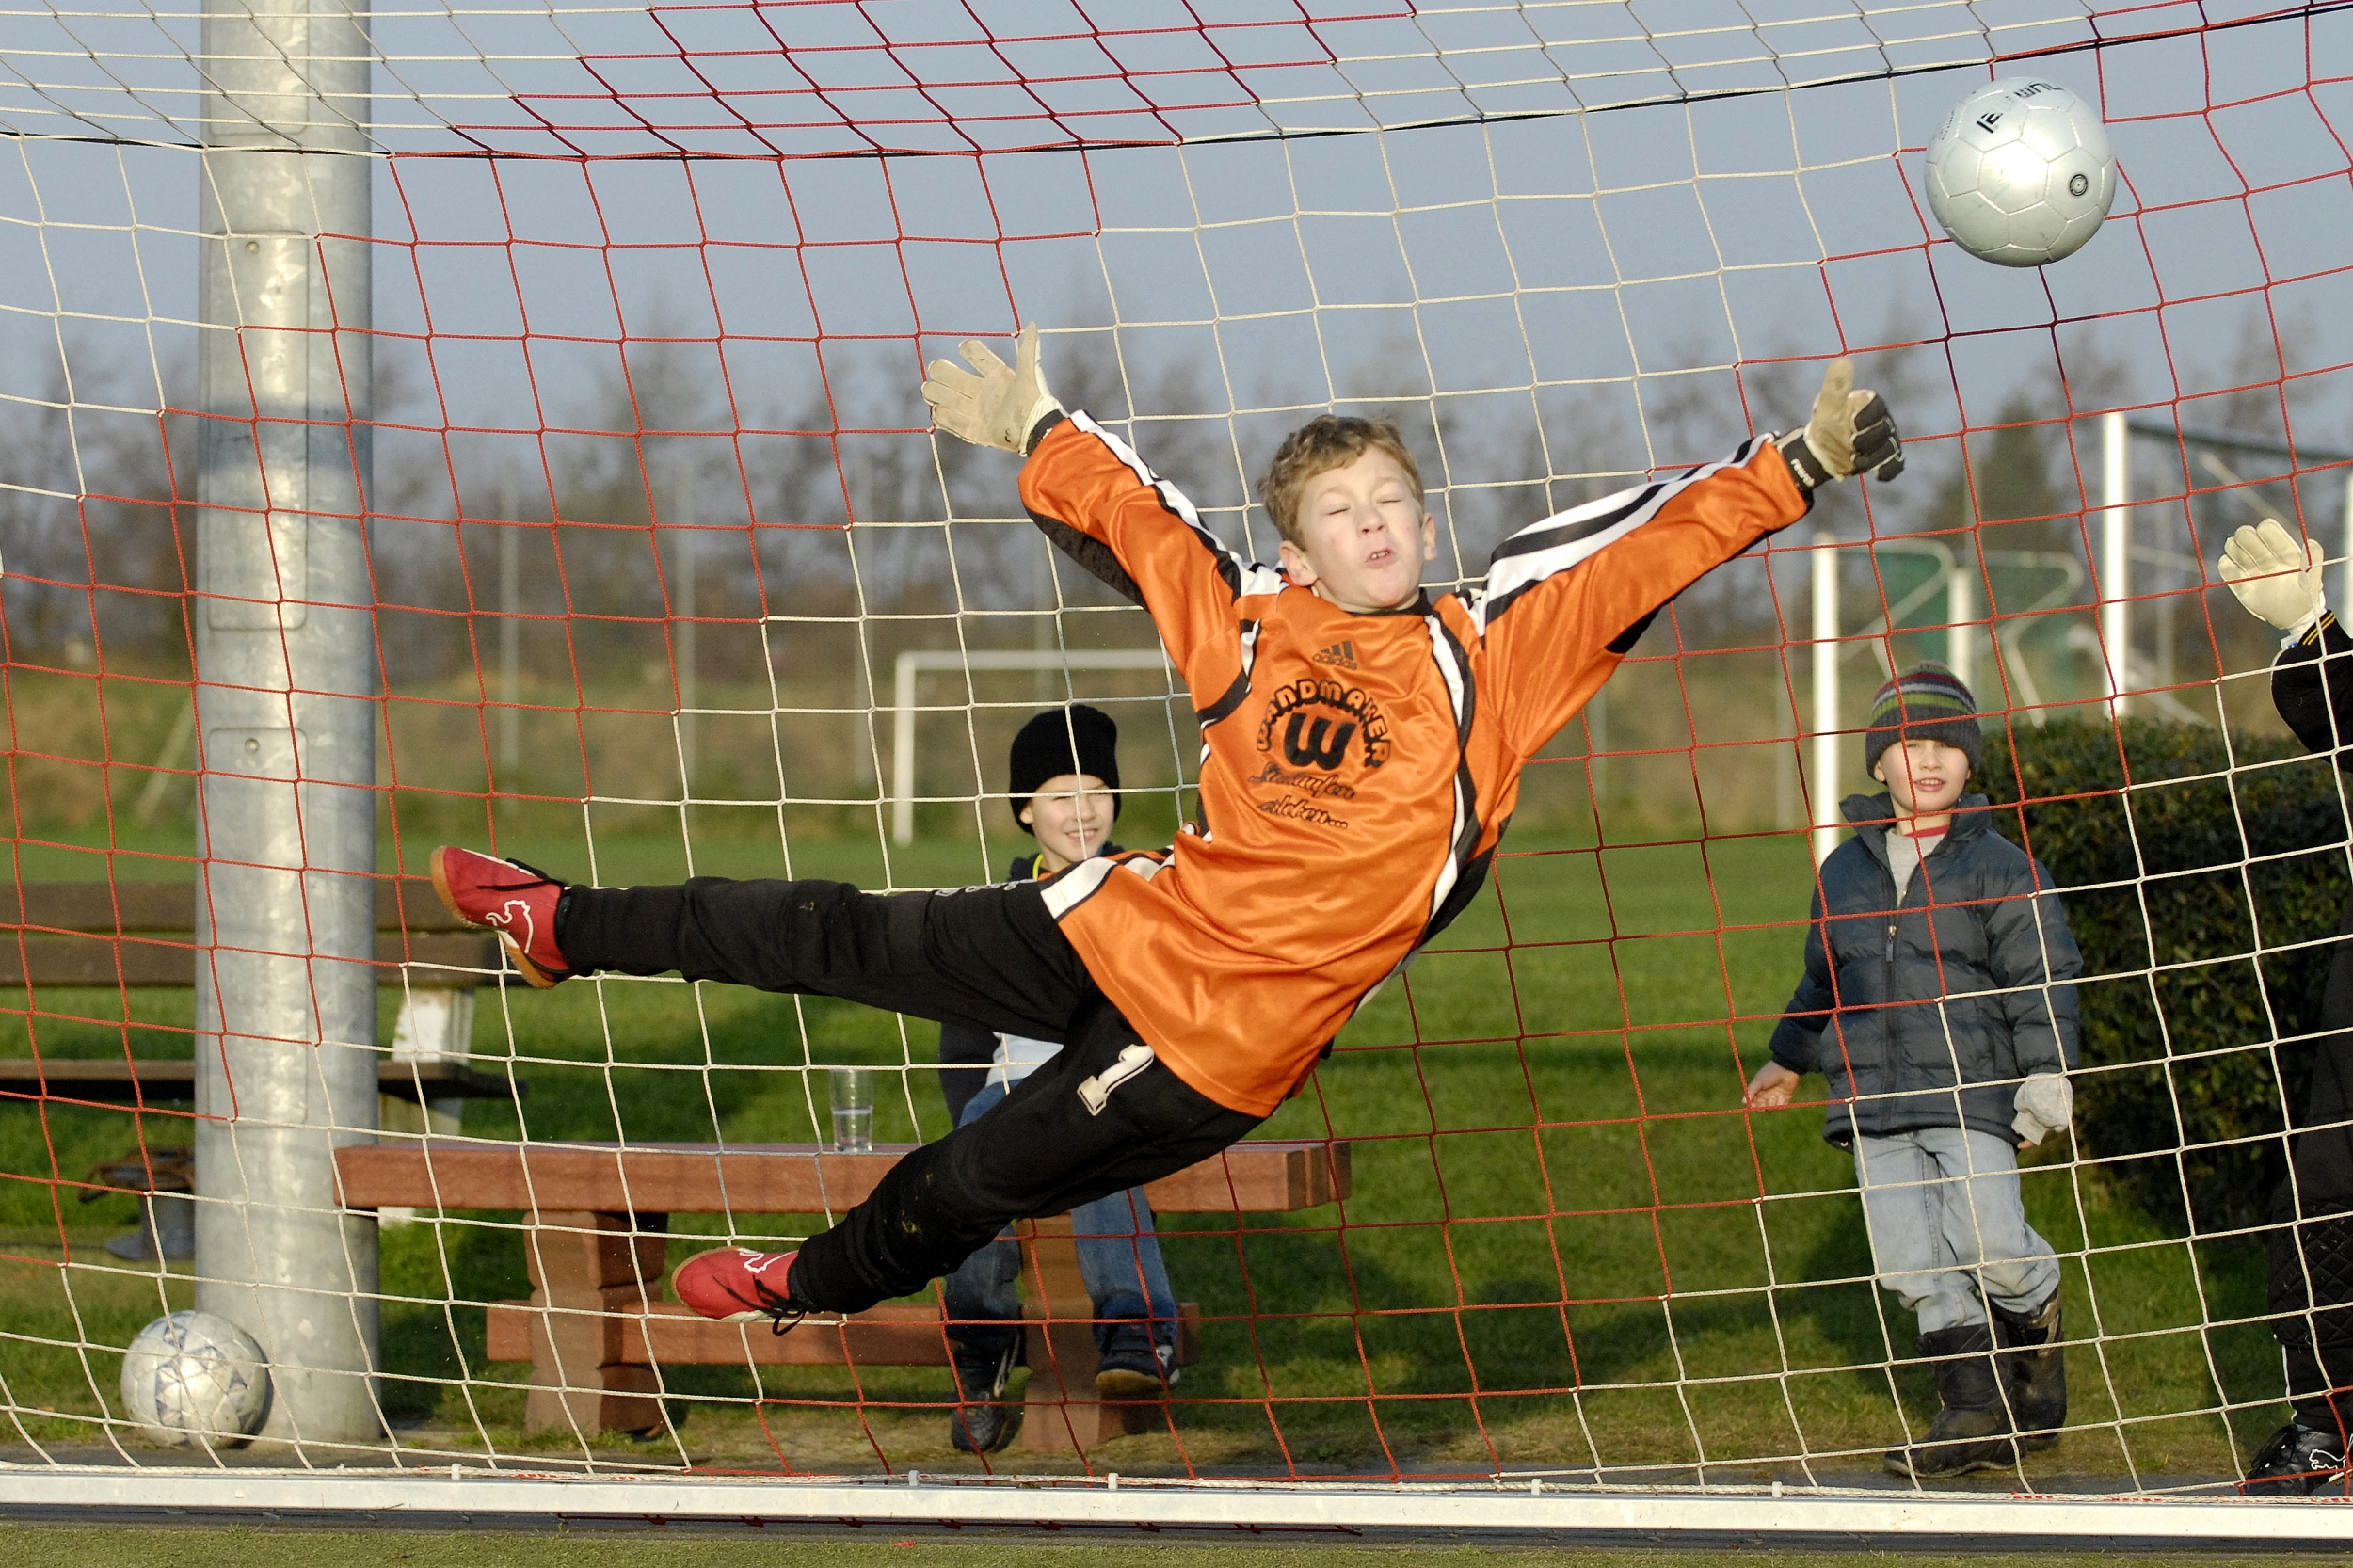 File:Soccer Youth Goal Keeper.jpg - Wikipedia, the free encyclopedia